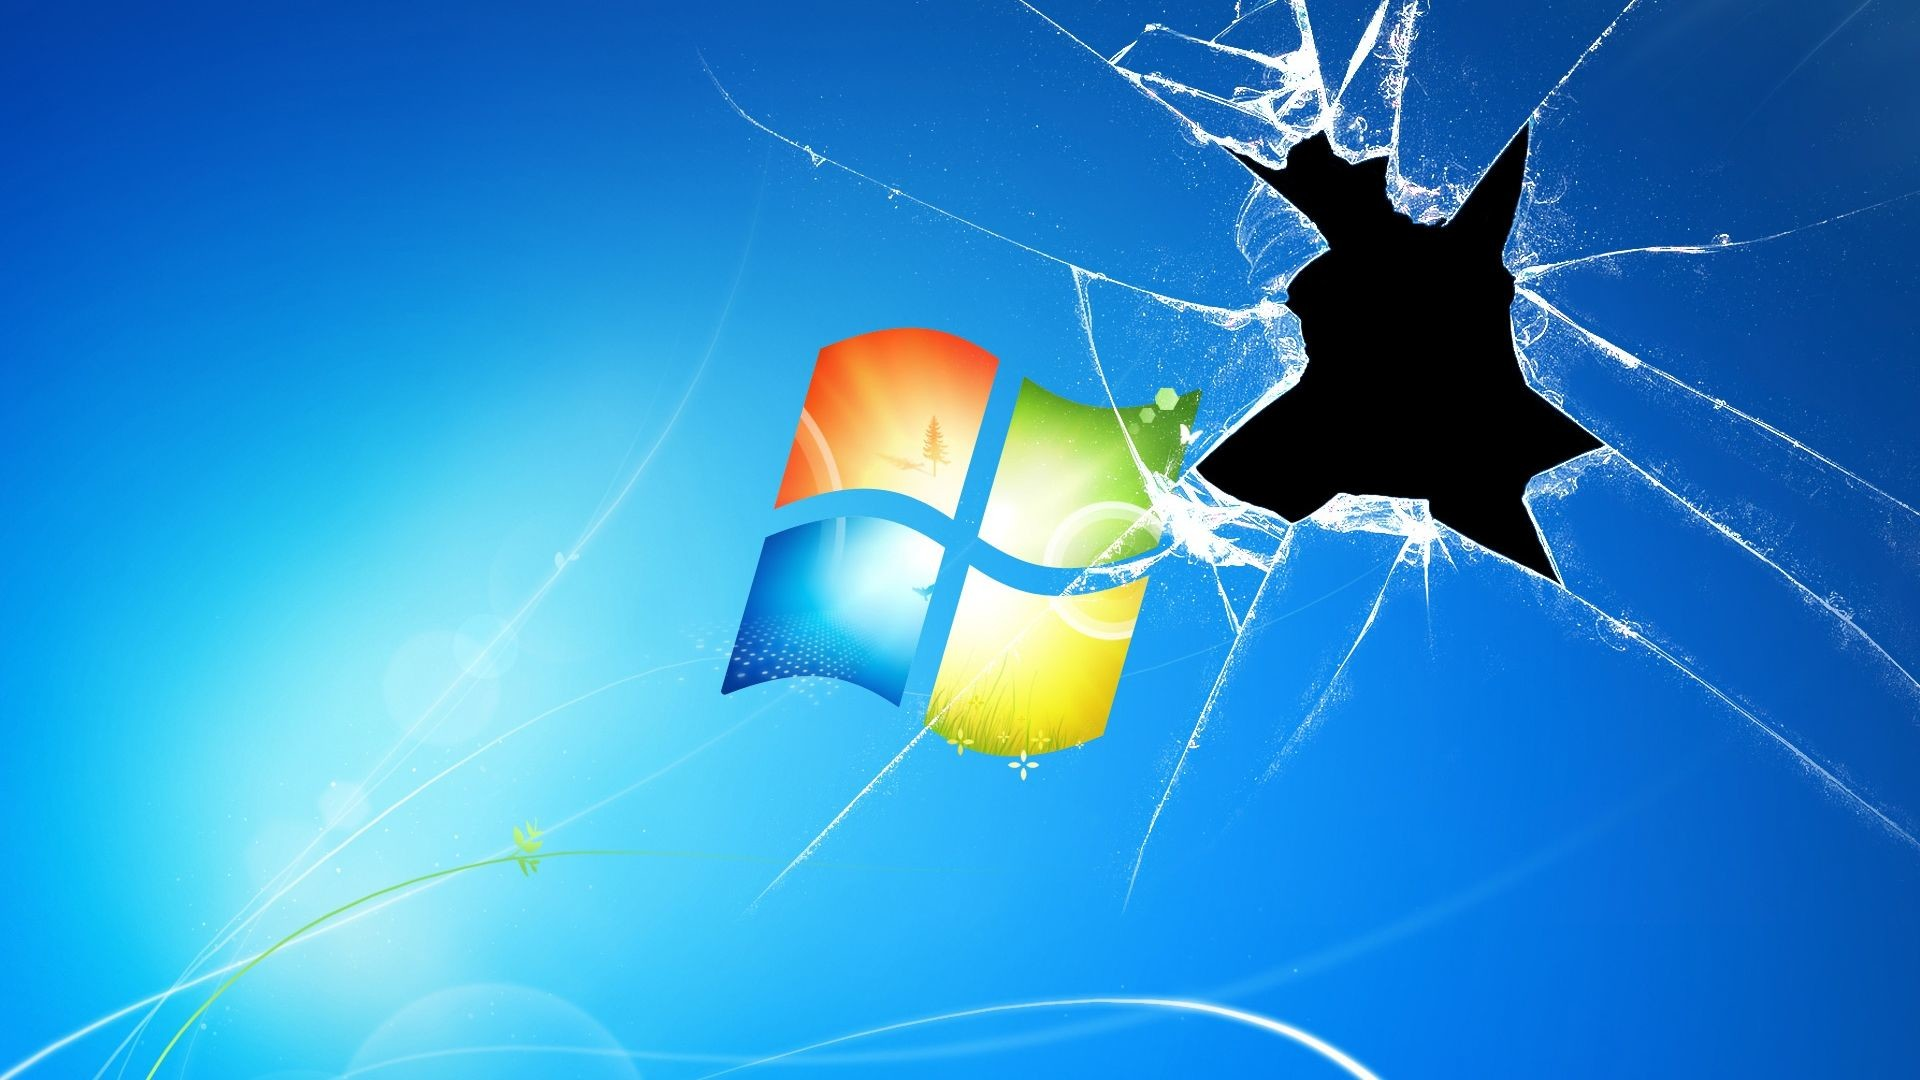 Res: 1920x1080, Windows Server Wallpapers (55 Wallpapers) - HD Wallpapers